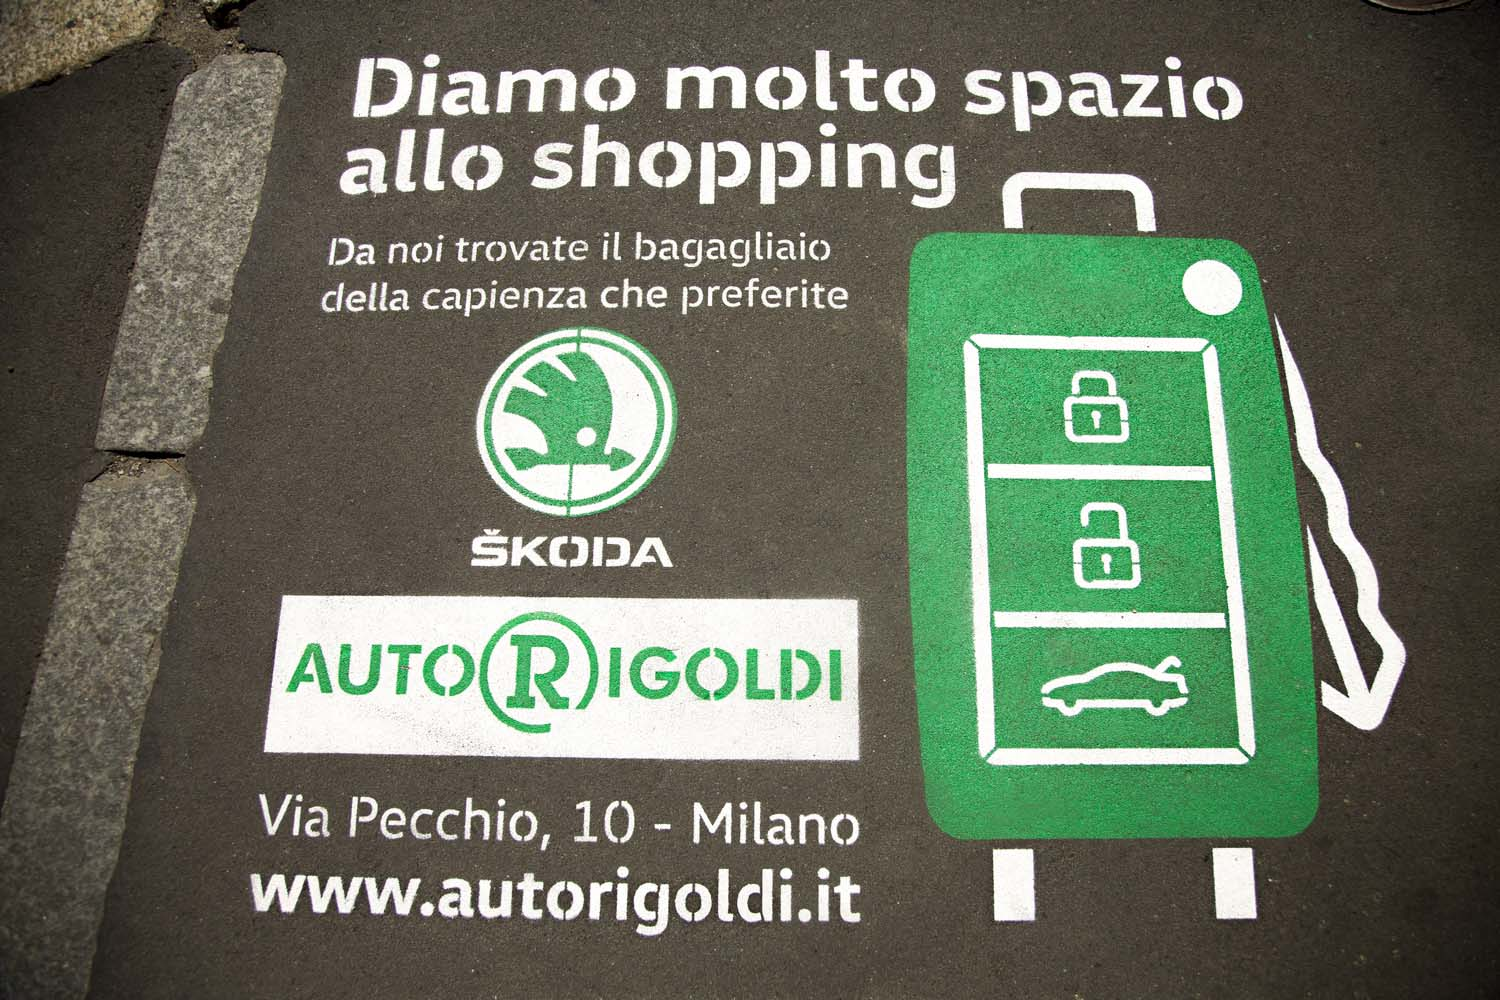 street advertising autorigoldi